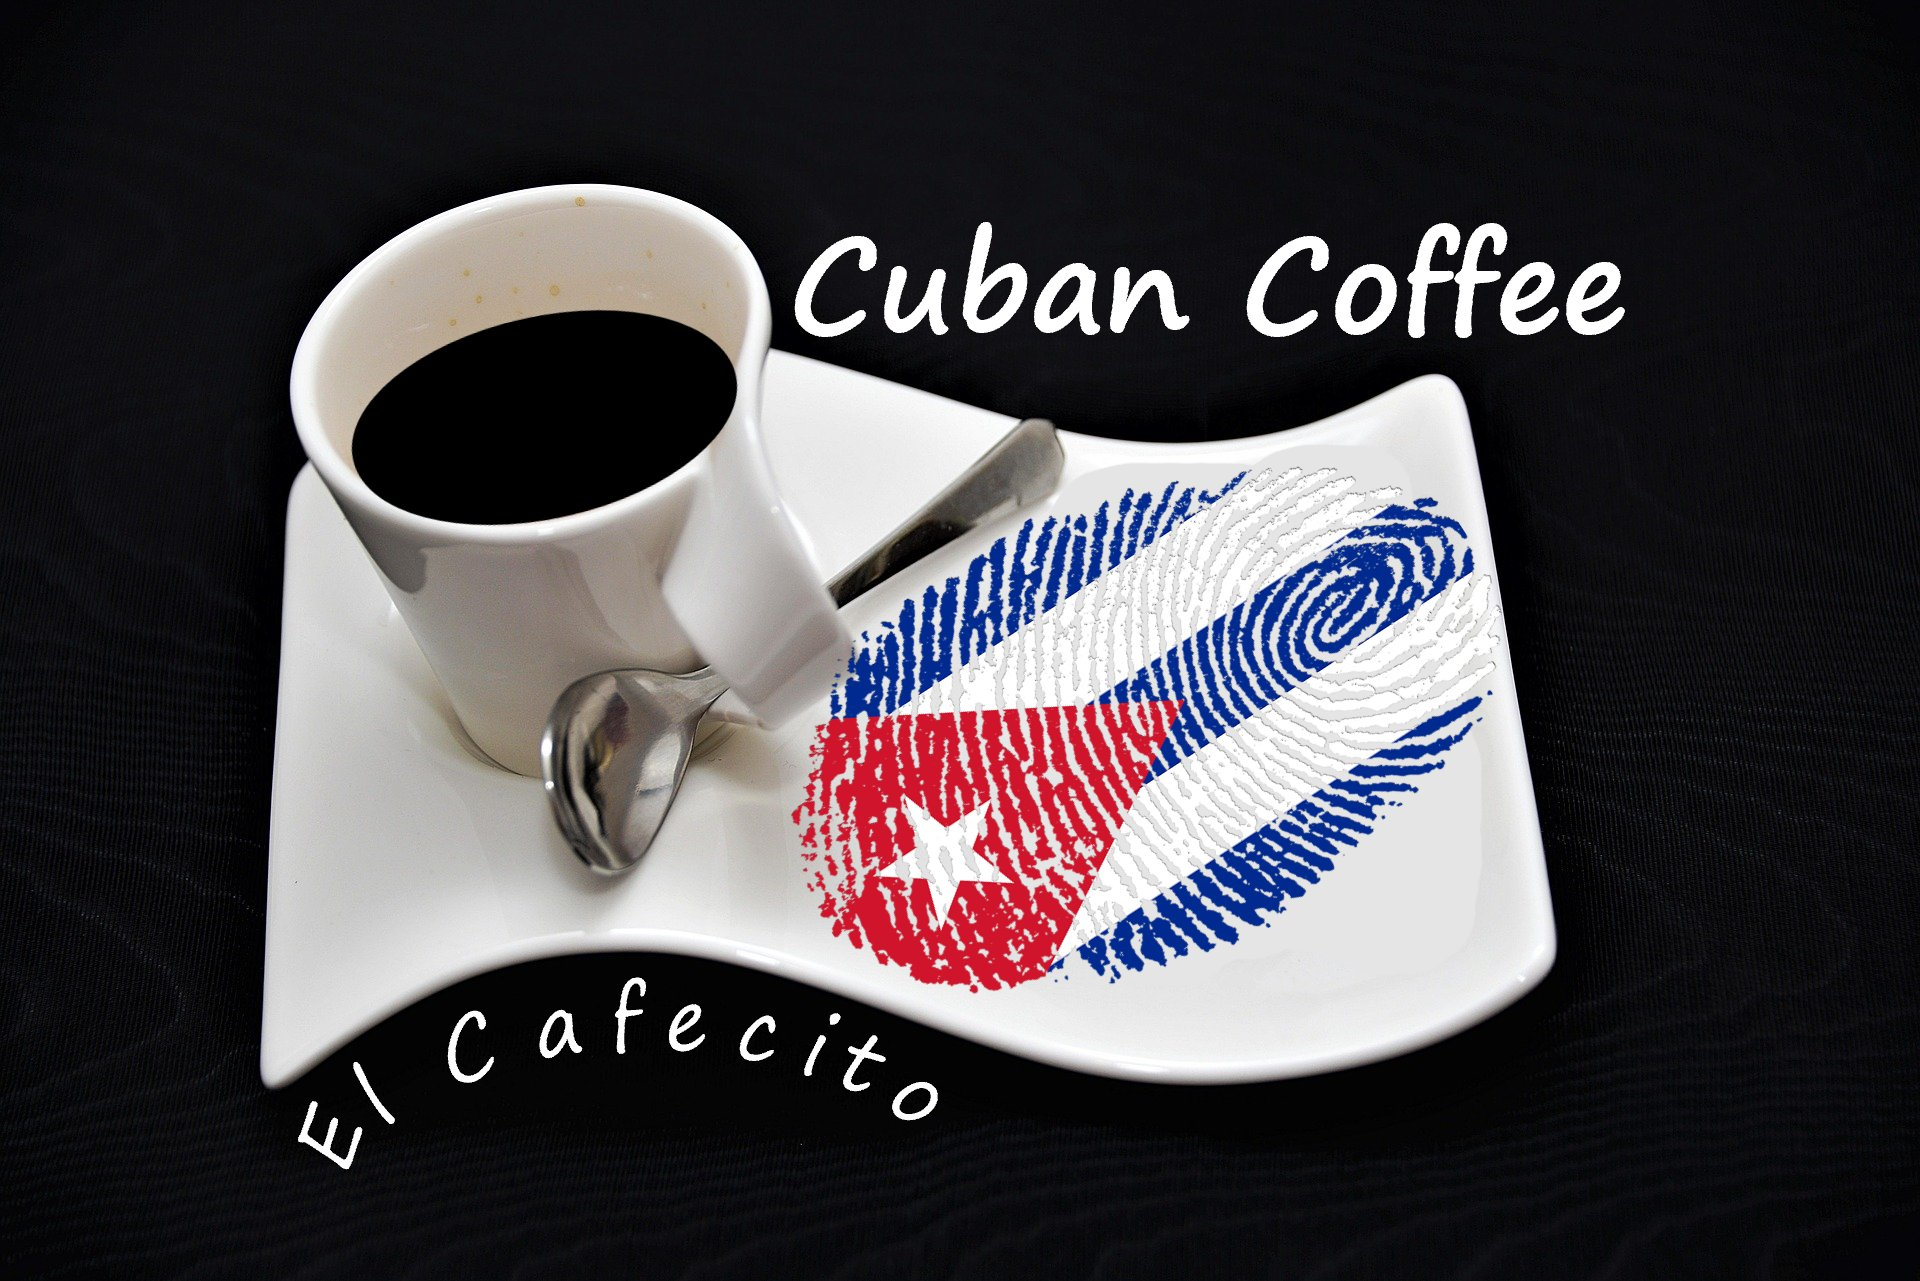 How To Make Cuban Coffee With Milk - Cafe Cubano -El Cafecito